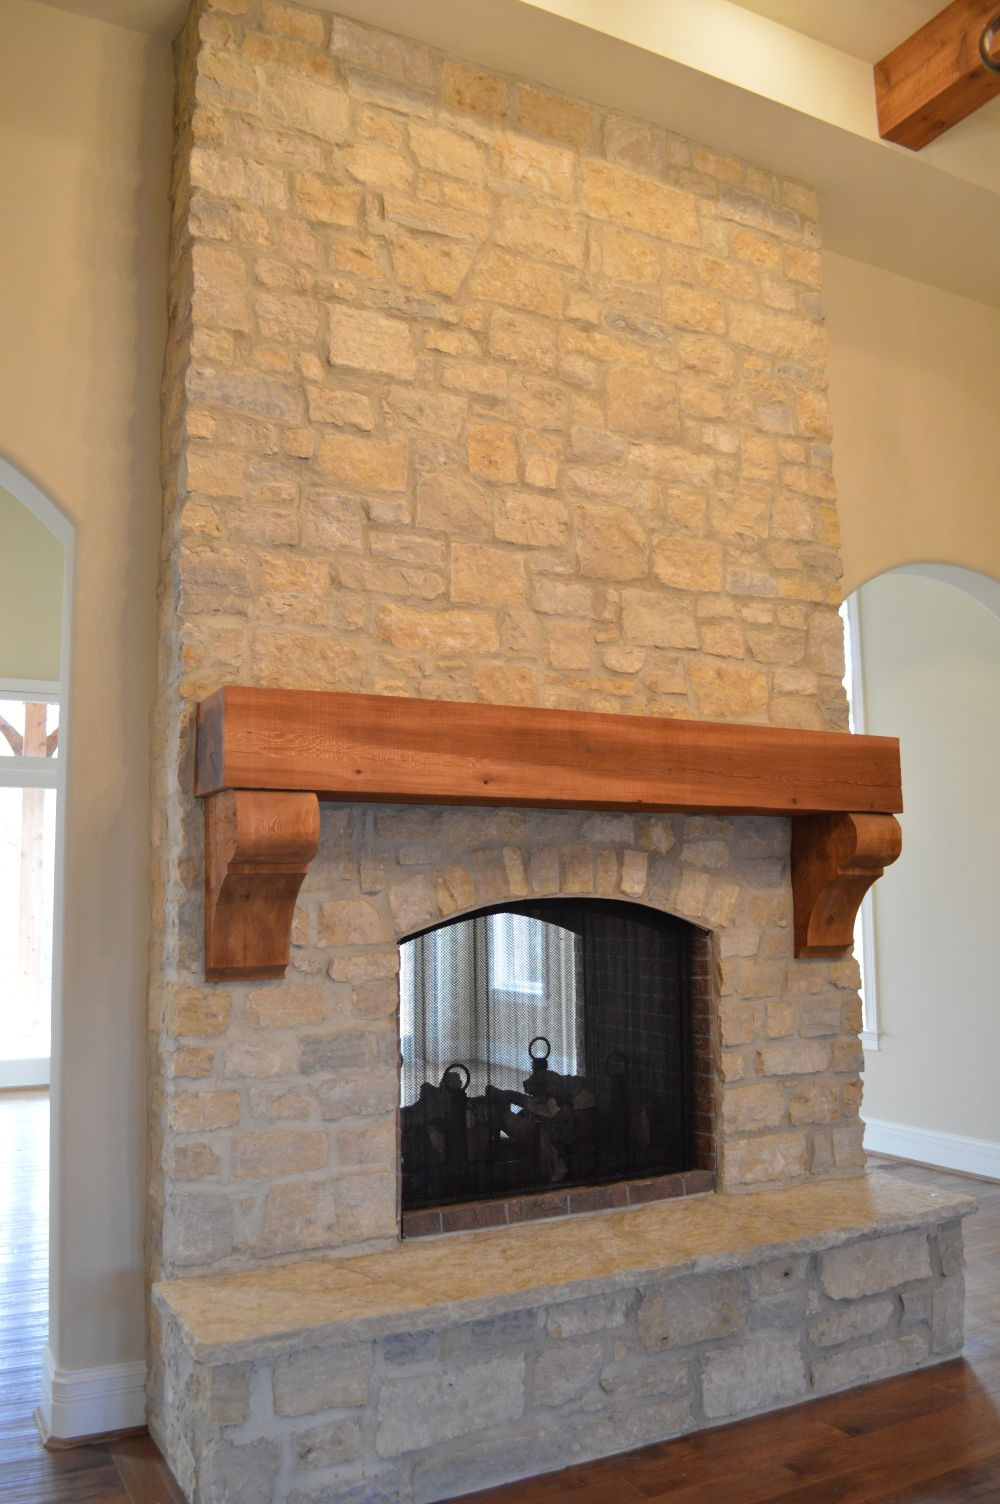 Natural Thin Cut Stone – completed work